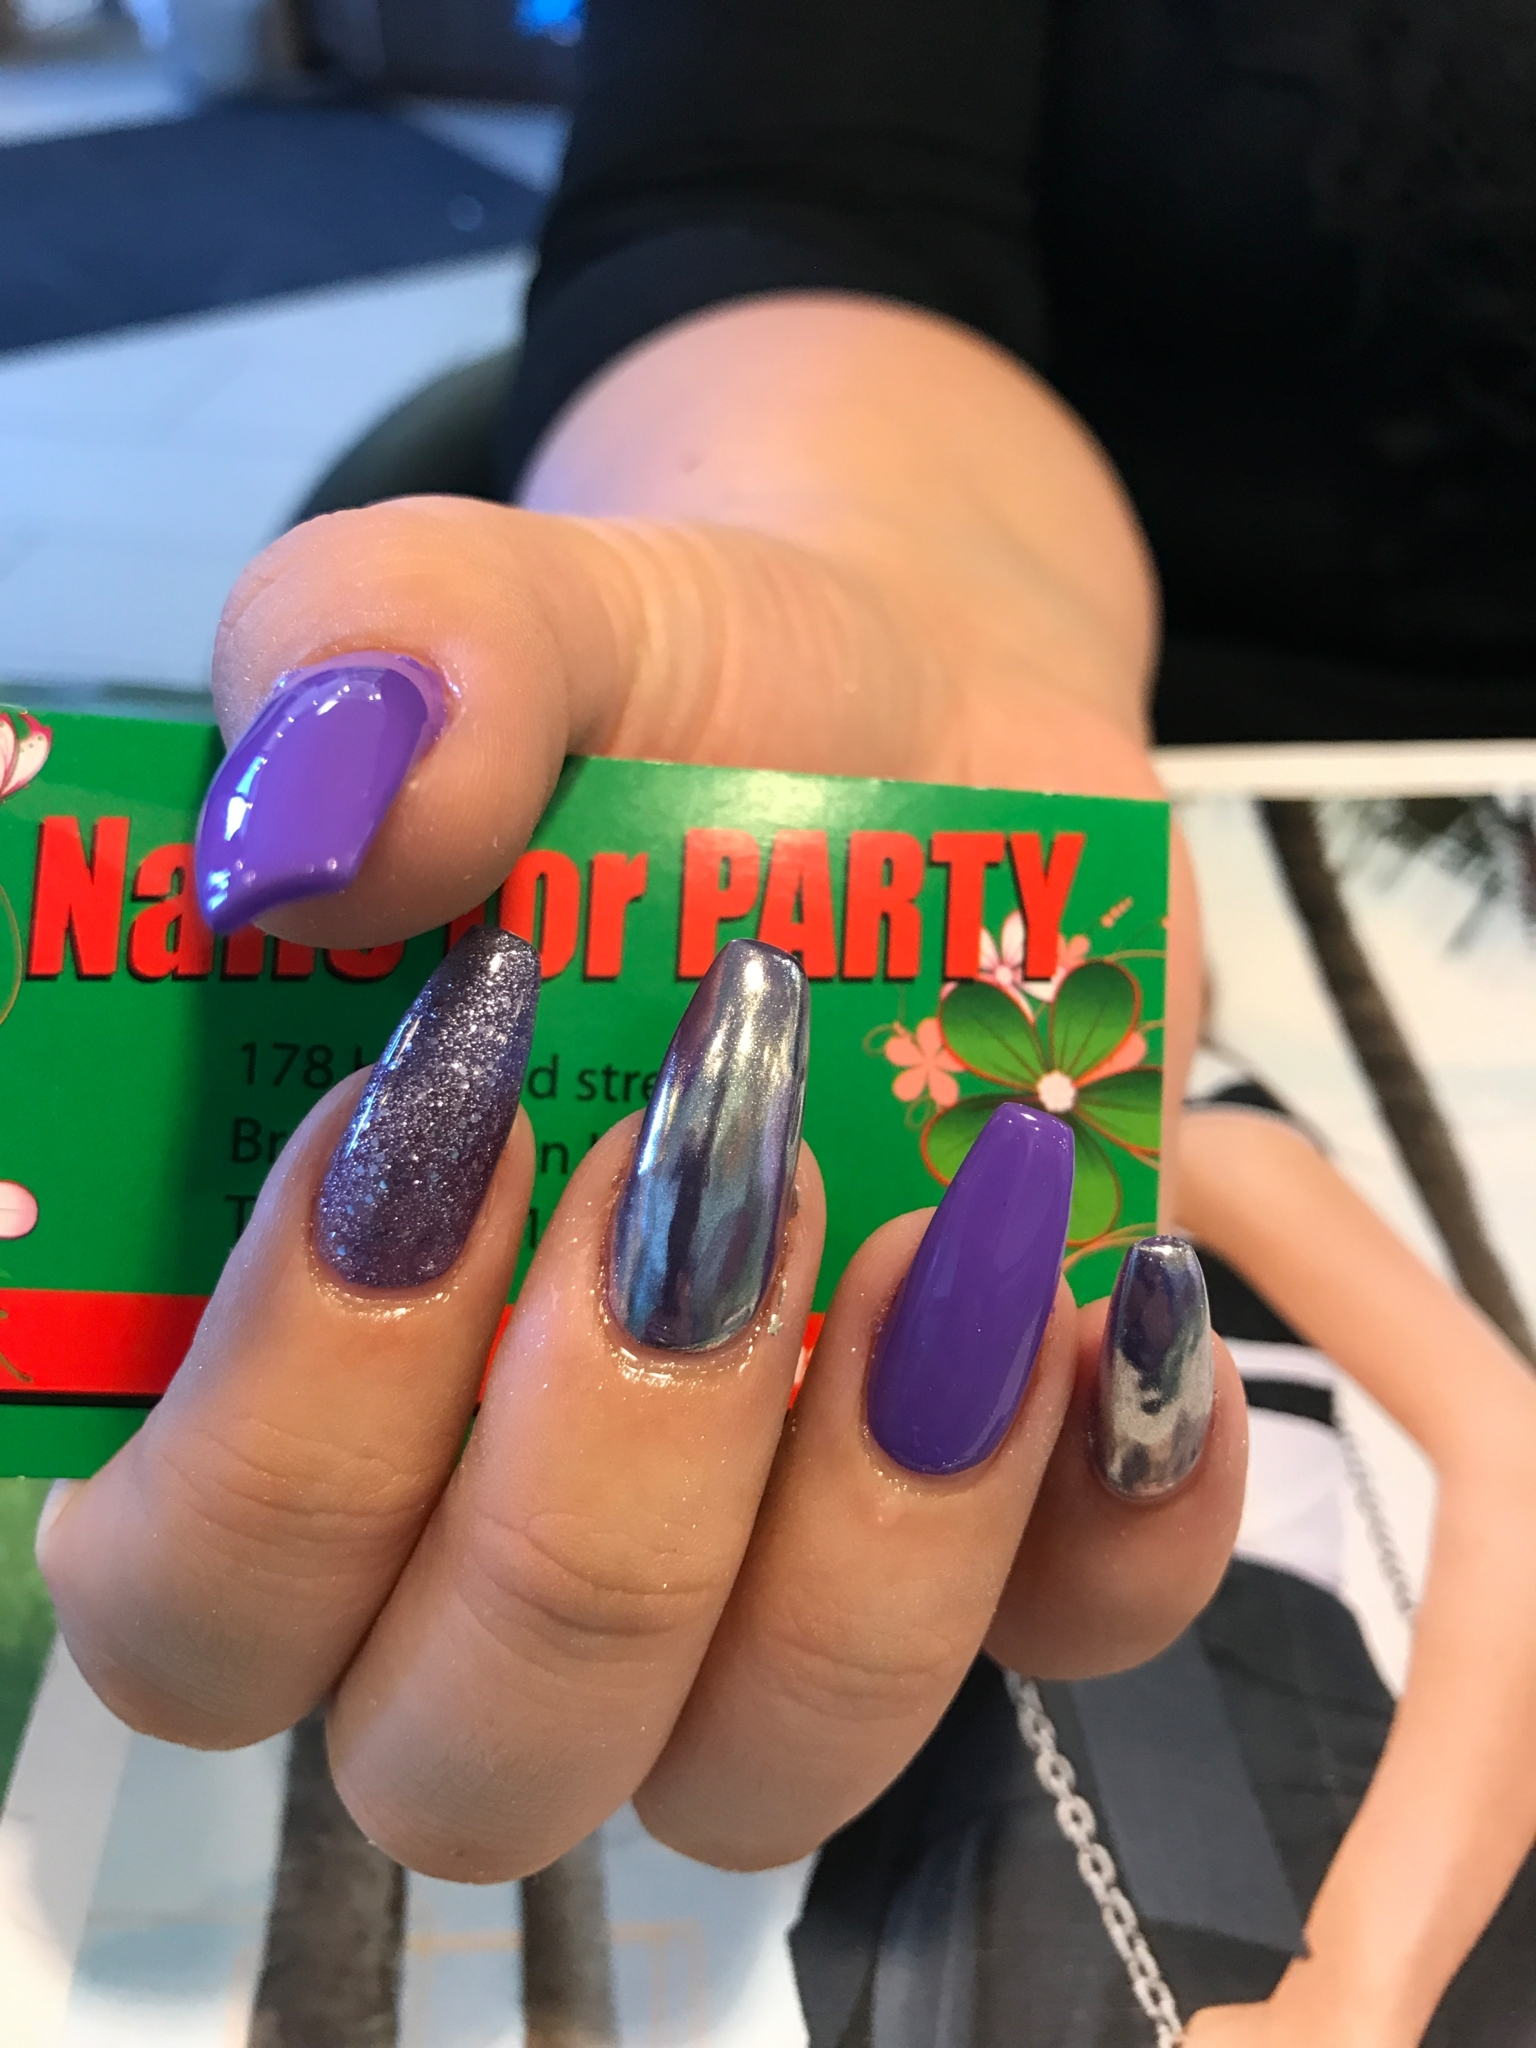 Images Nails For Party Luxury Spa